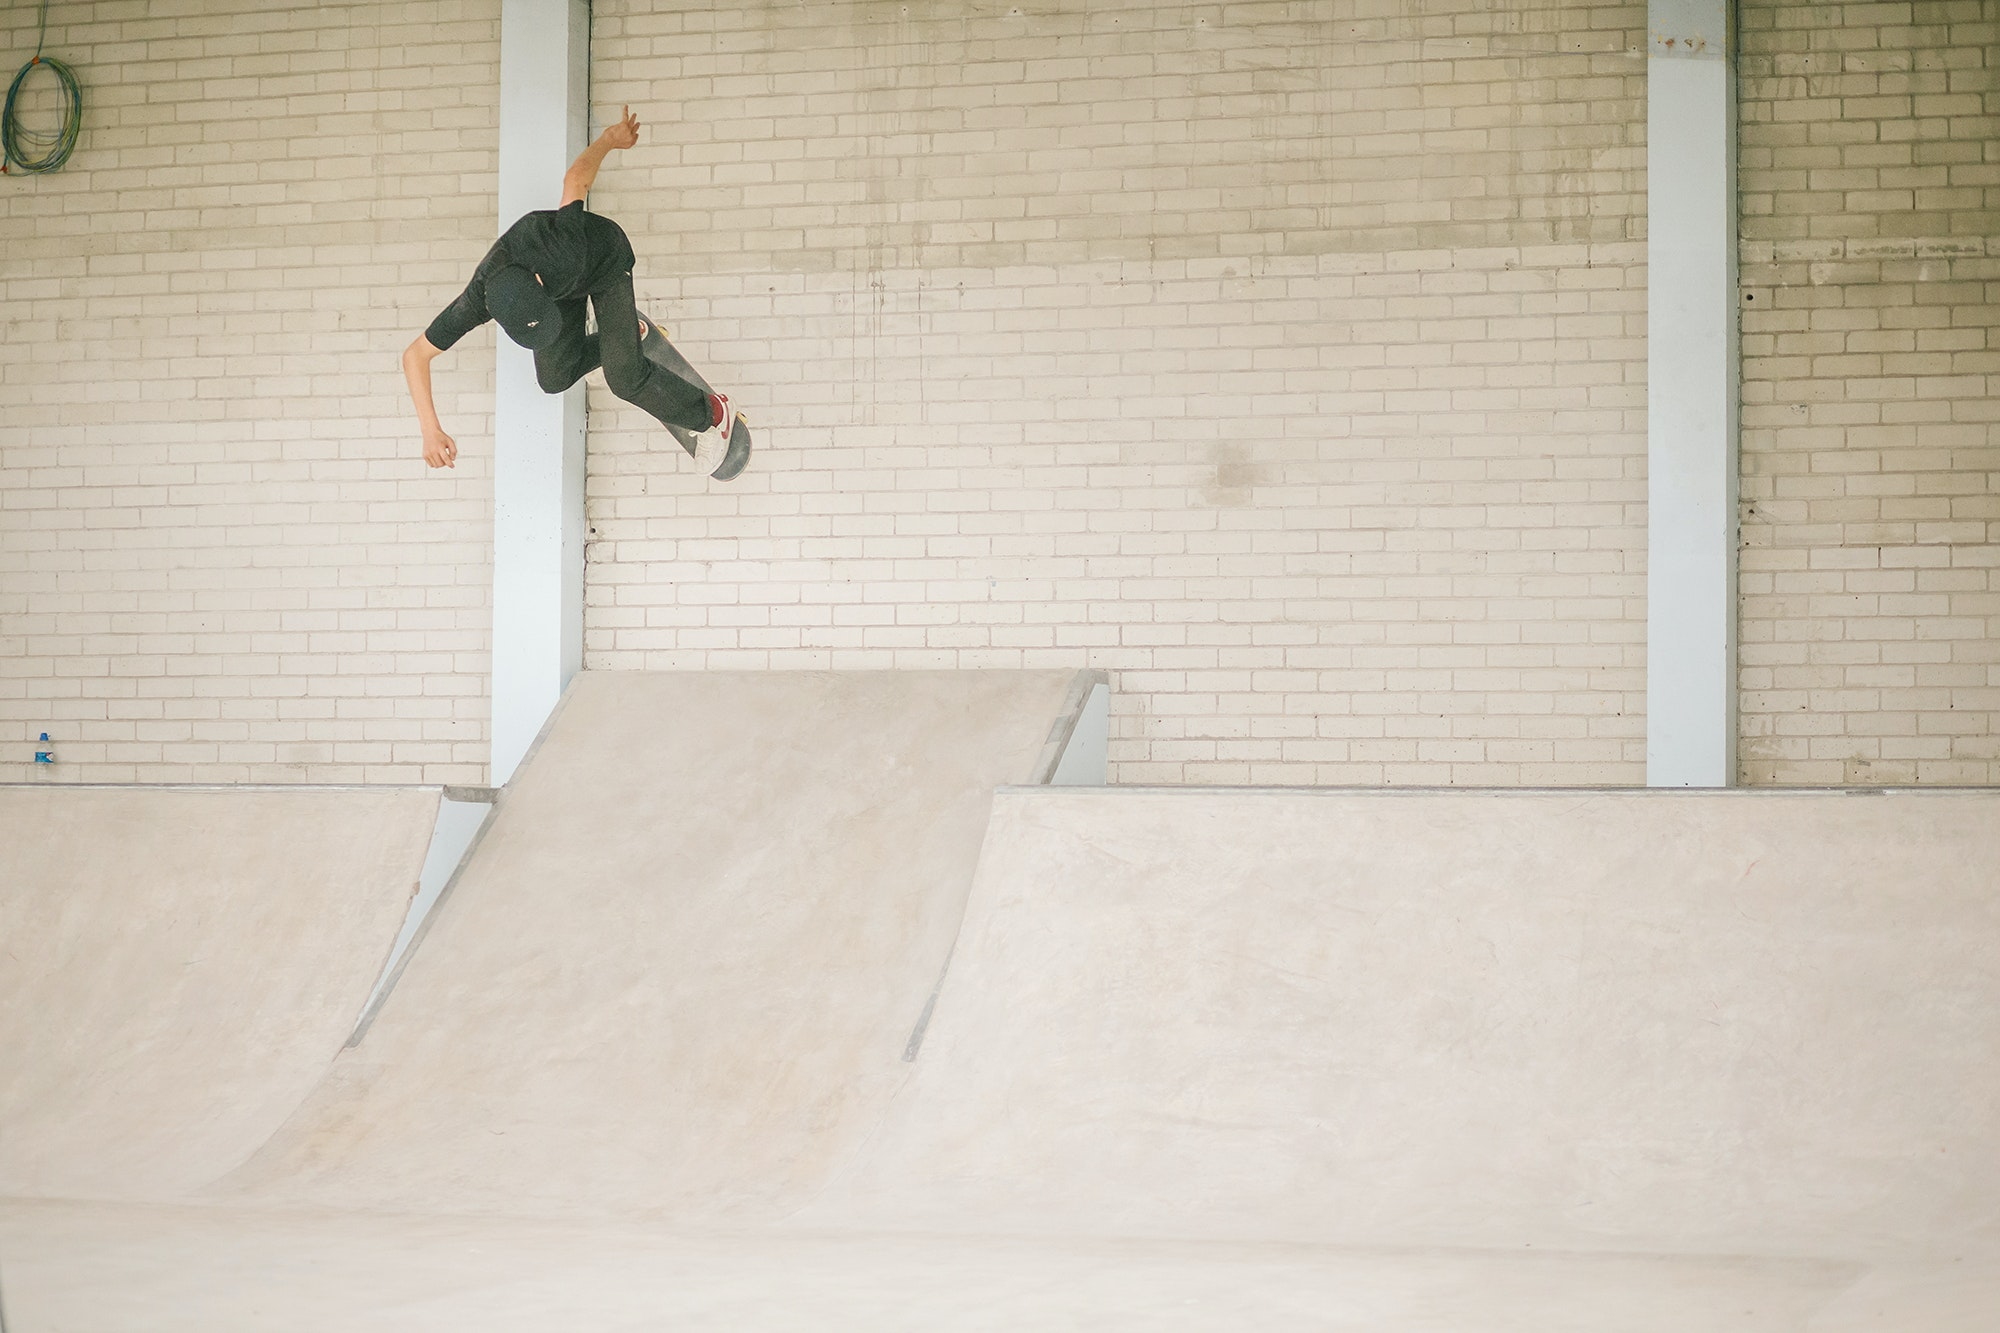 Charlie Birch - ollie out to wallride